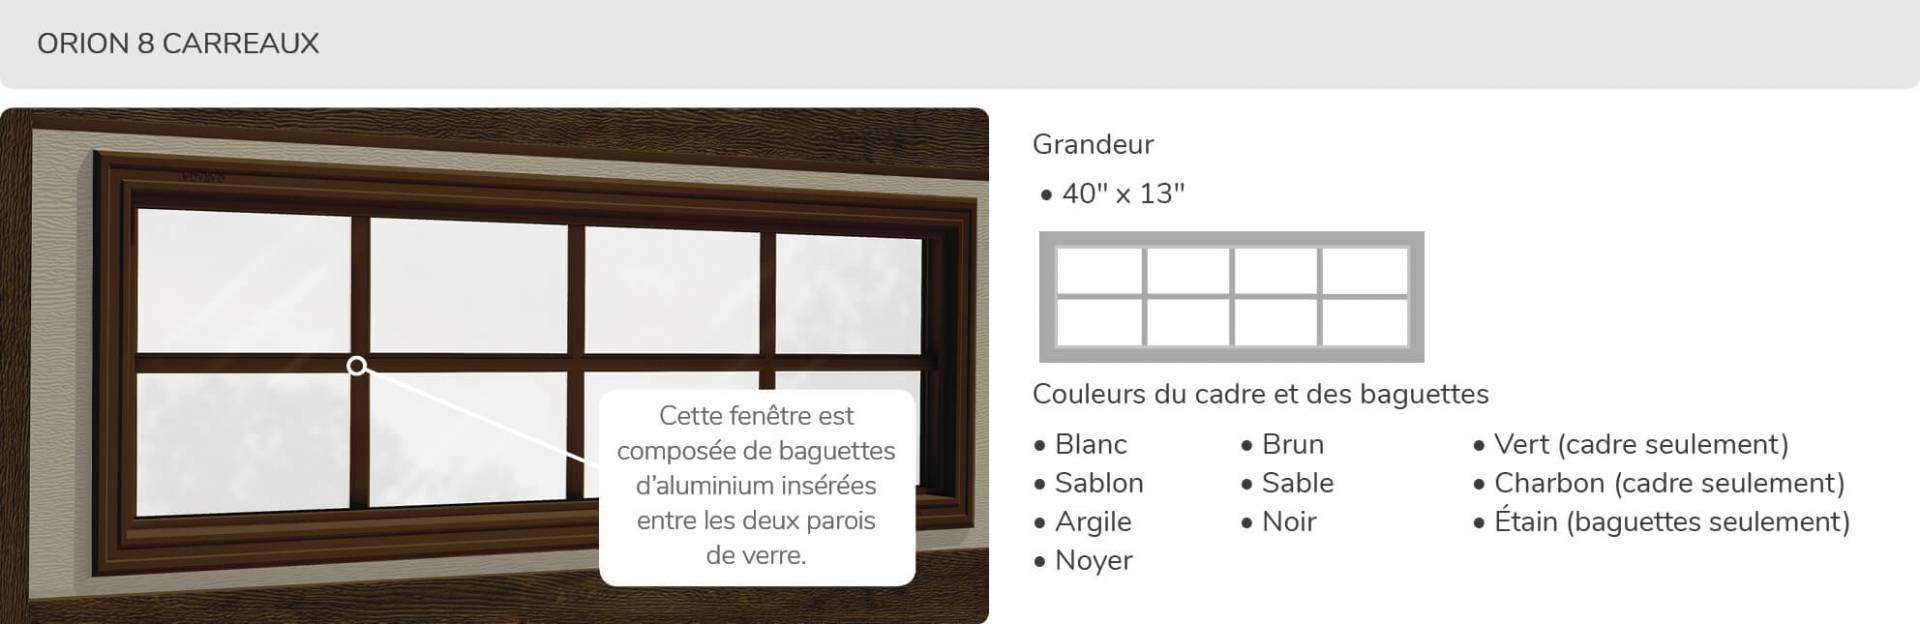 Orion 8 carreaux, 40' x 13', disponible pour la porte R16